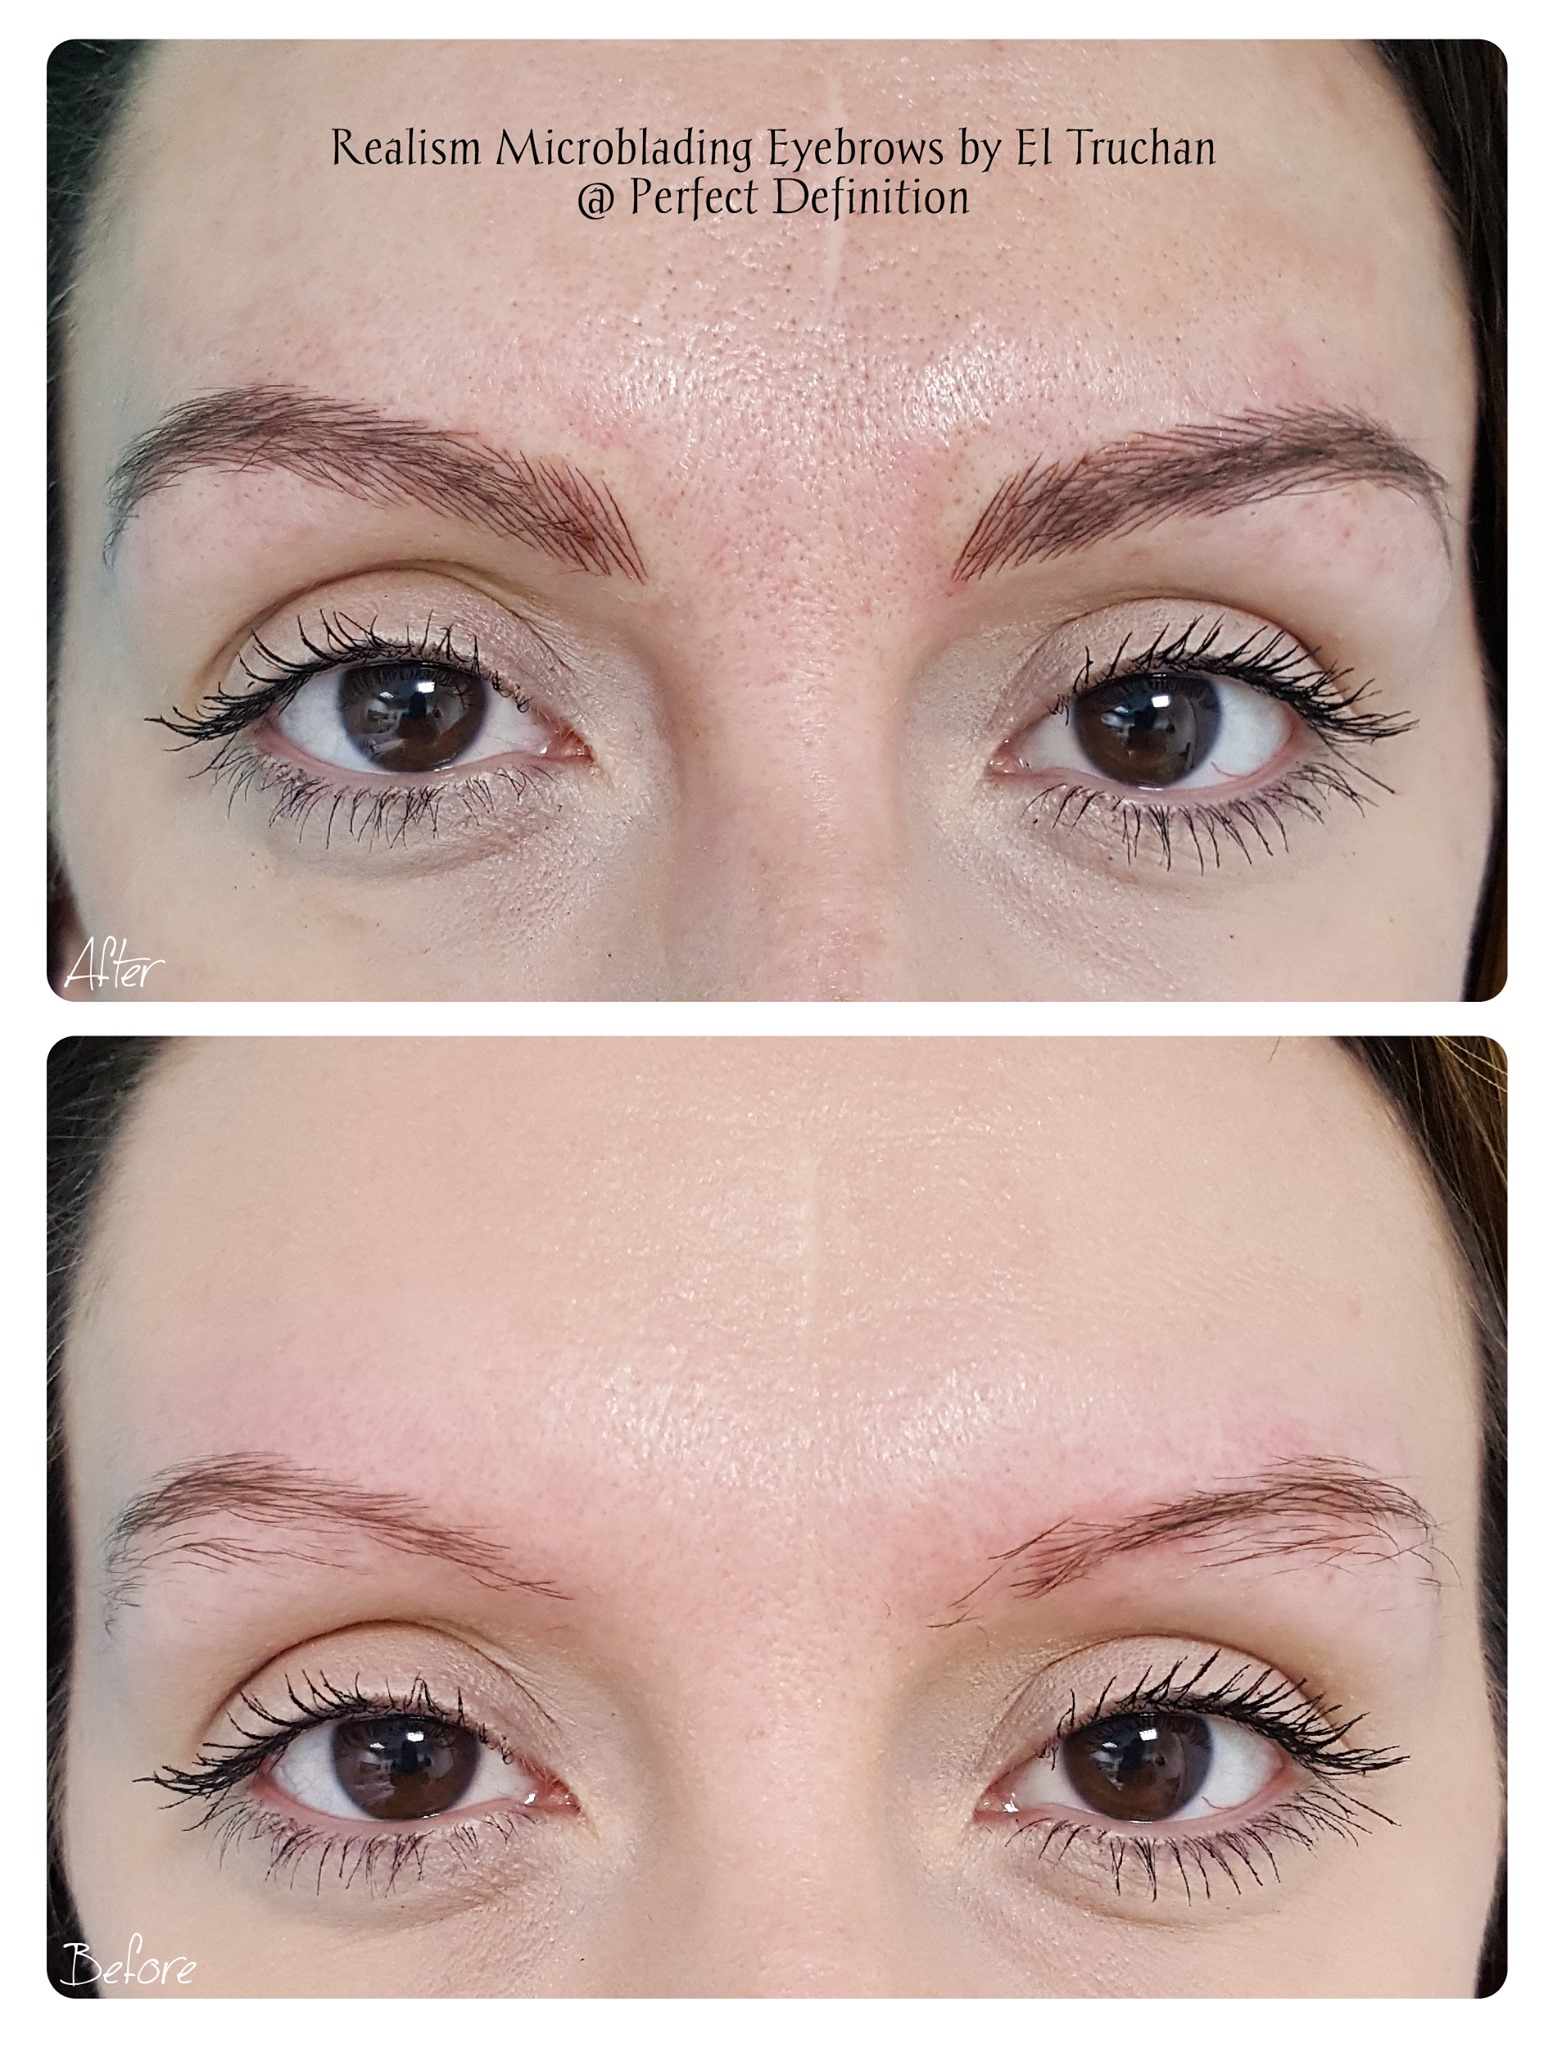 Realism Microblading Eyebrows by El Truc